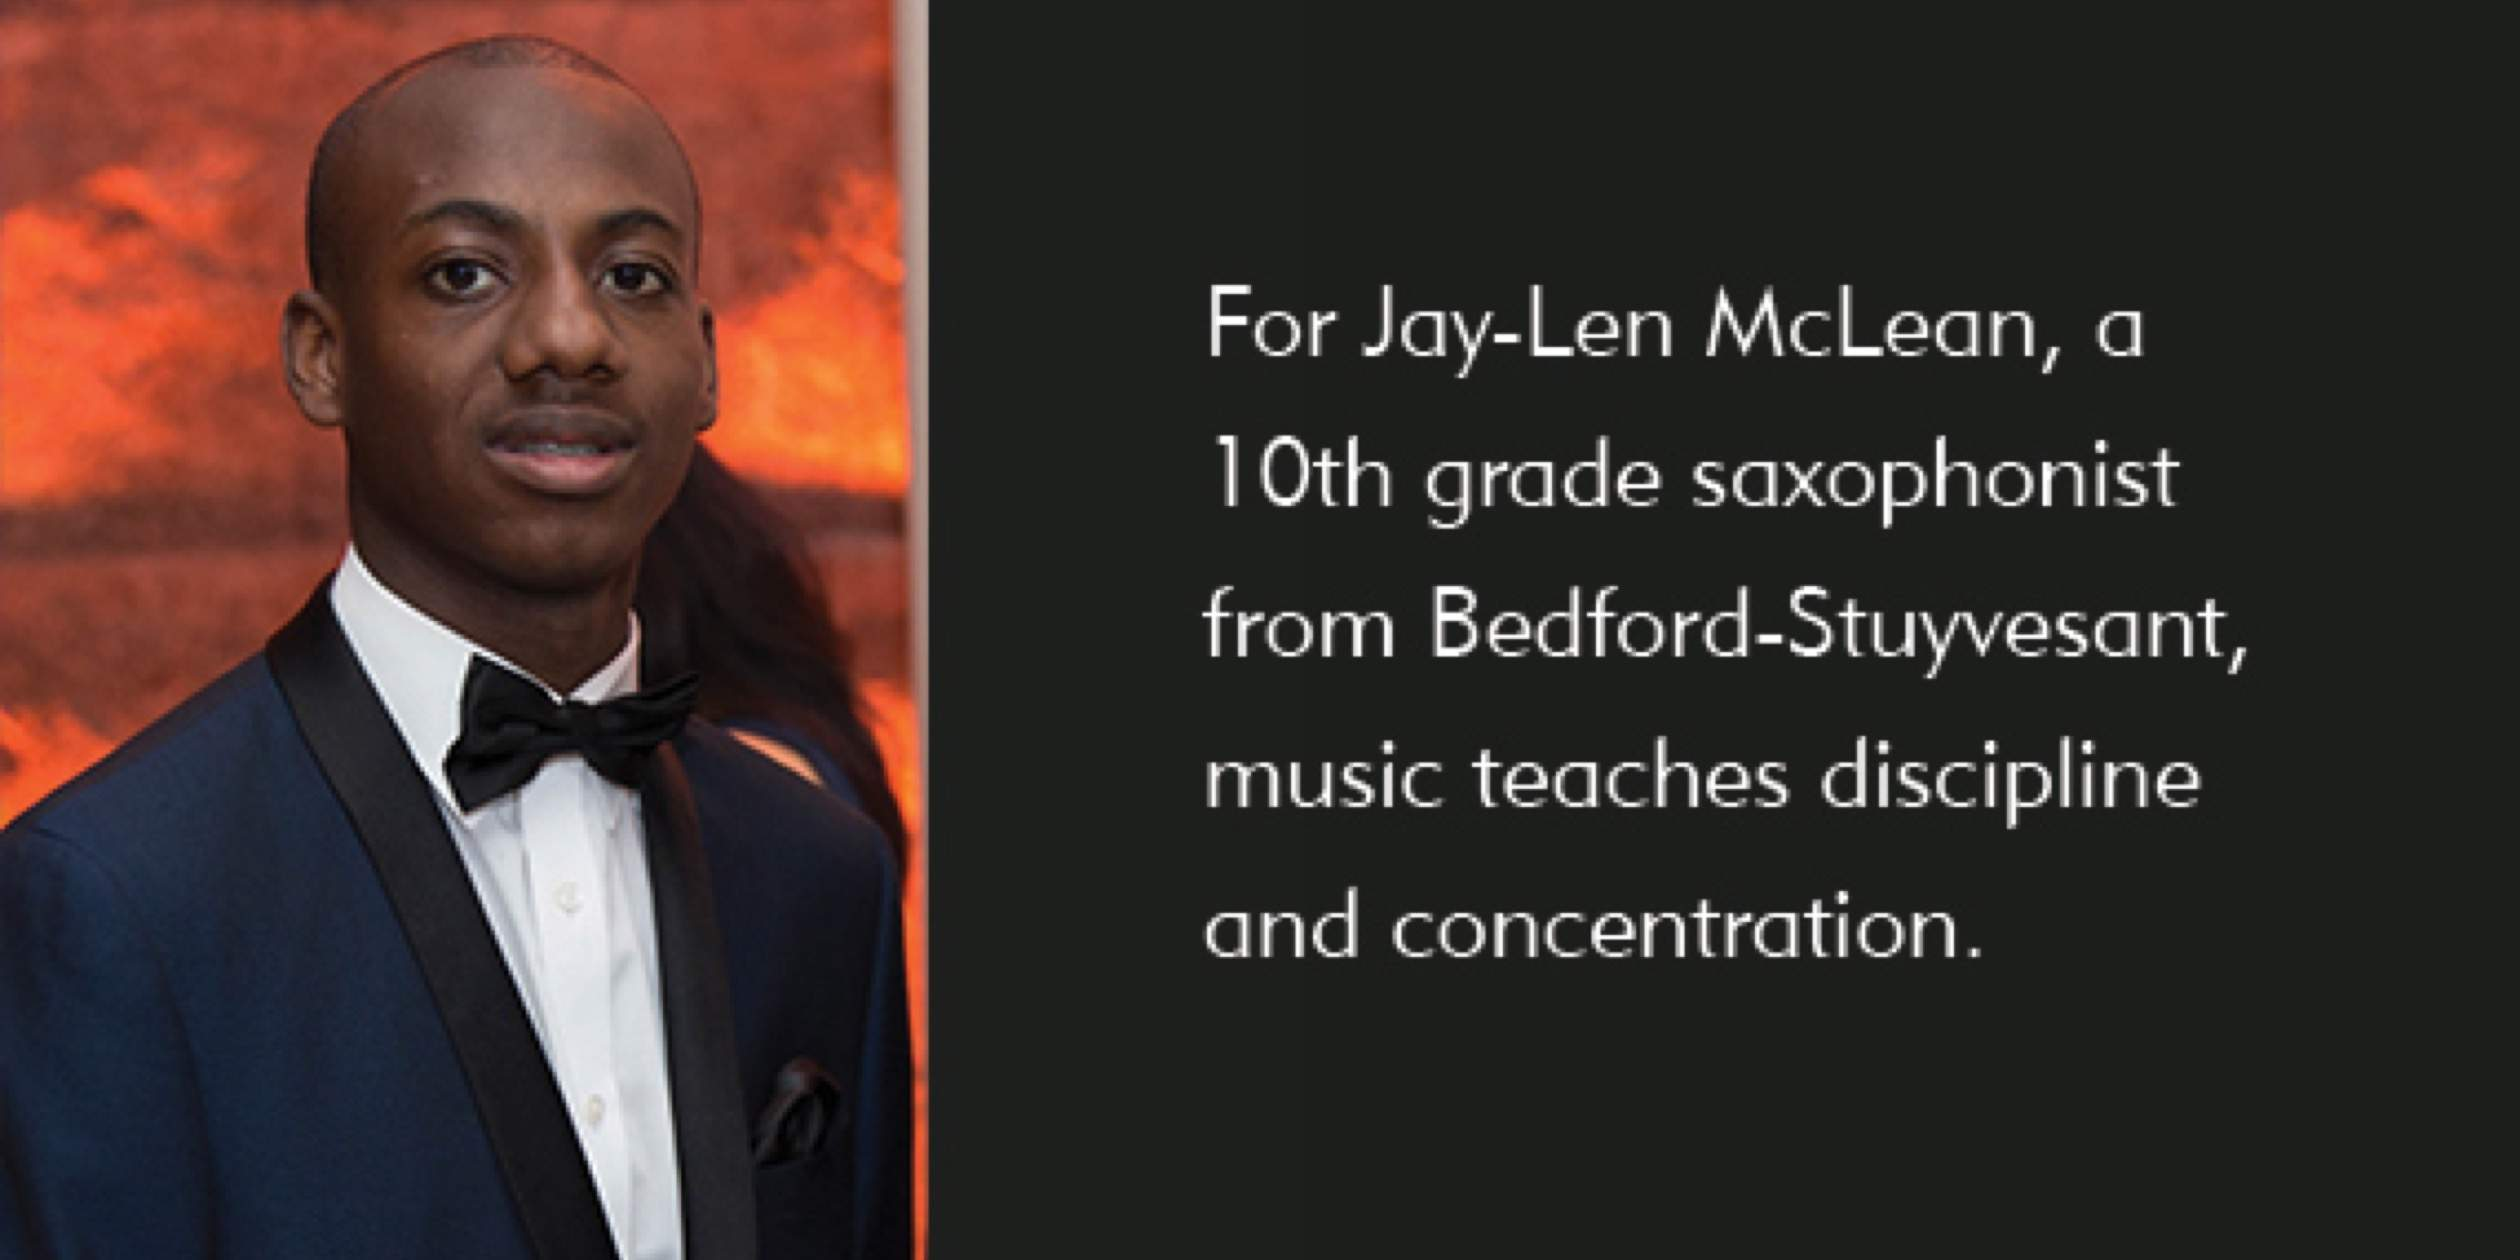 Meet Jay-Len McClean, saxophonist and SMS 10th grader